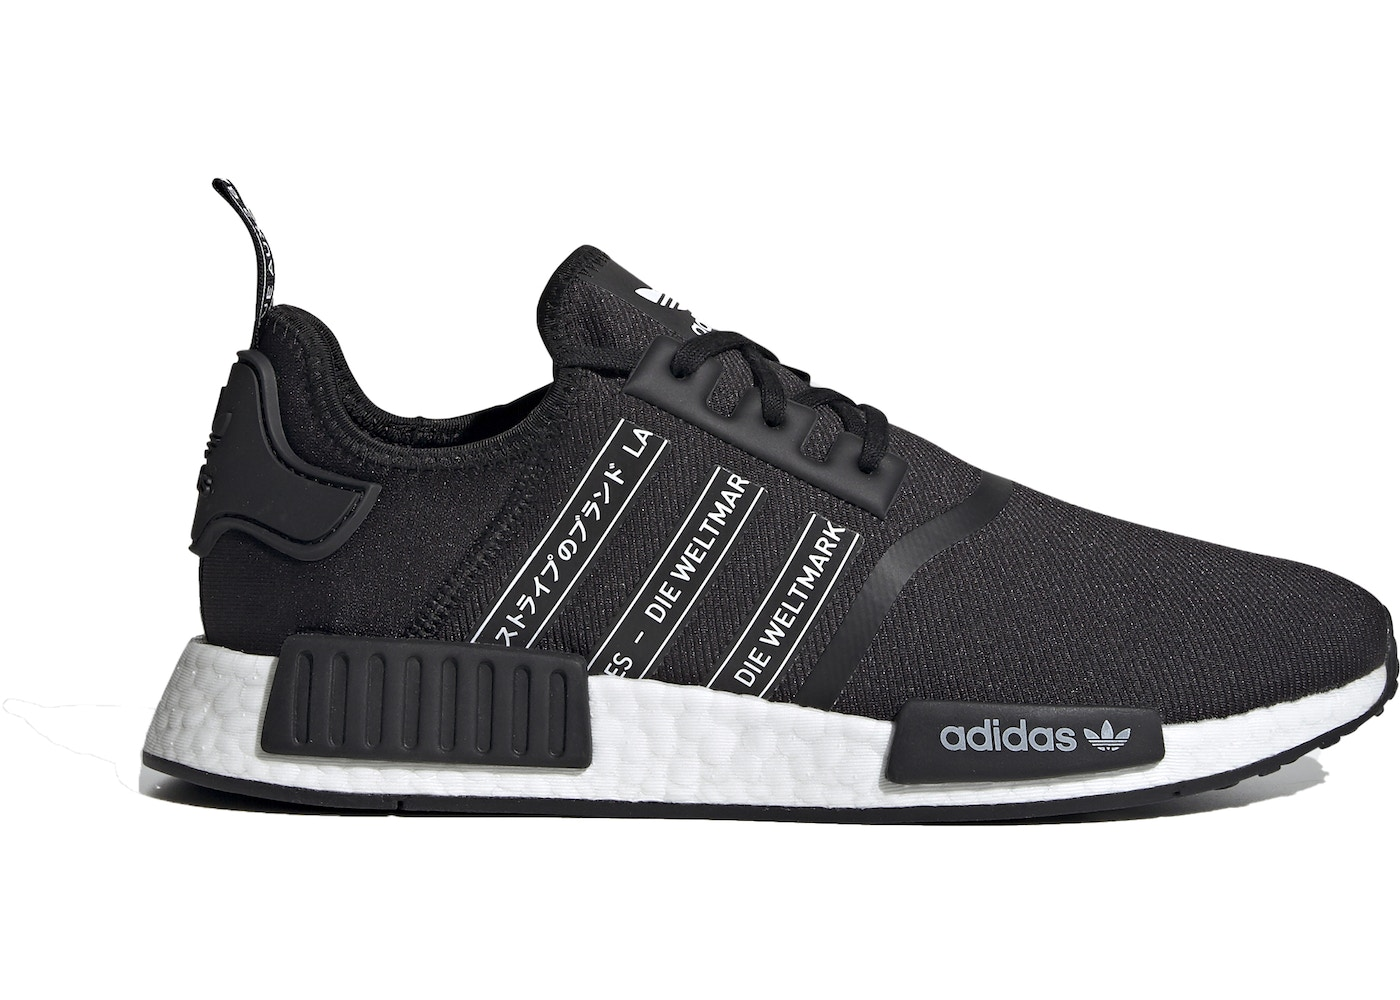 Adidas Nmd R1 Core Black Cloud White Fx1033